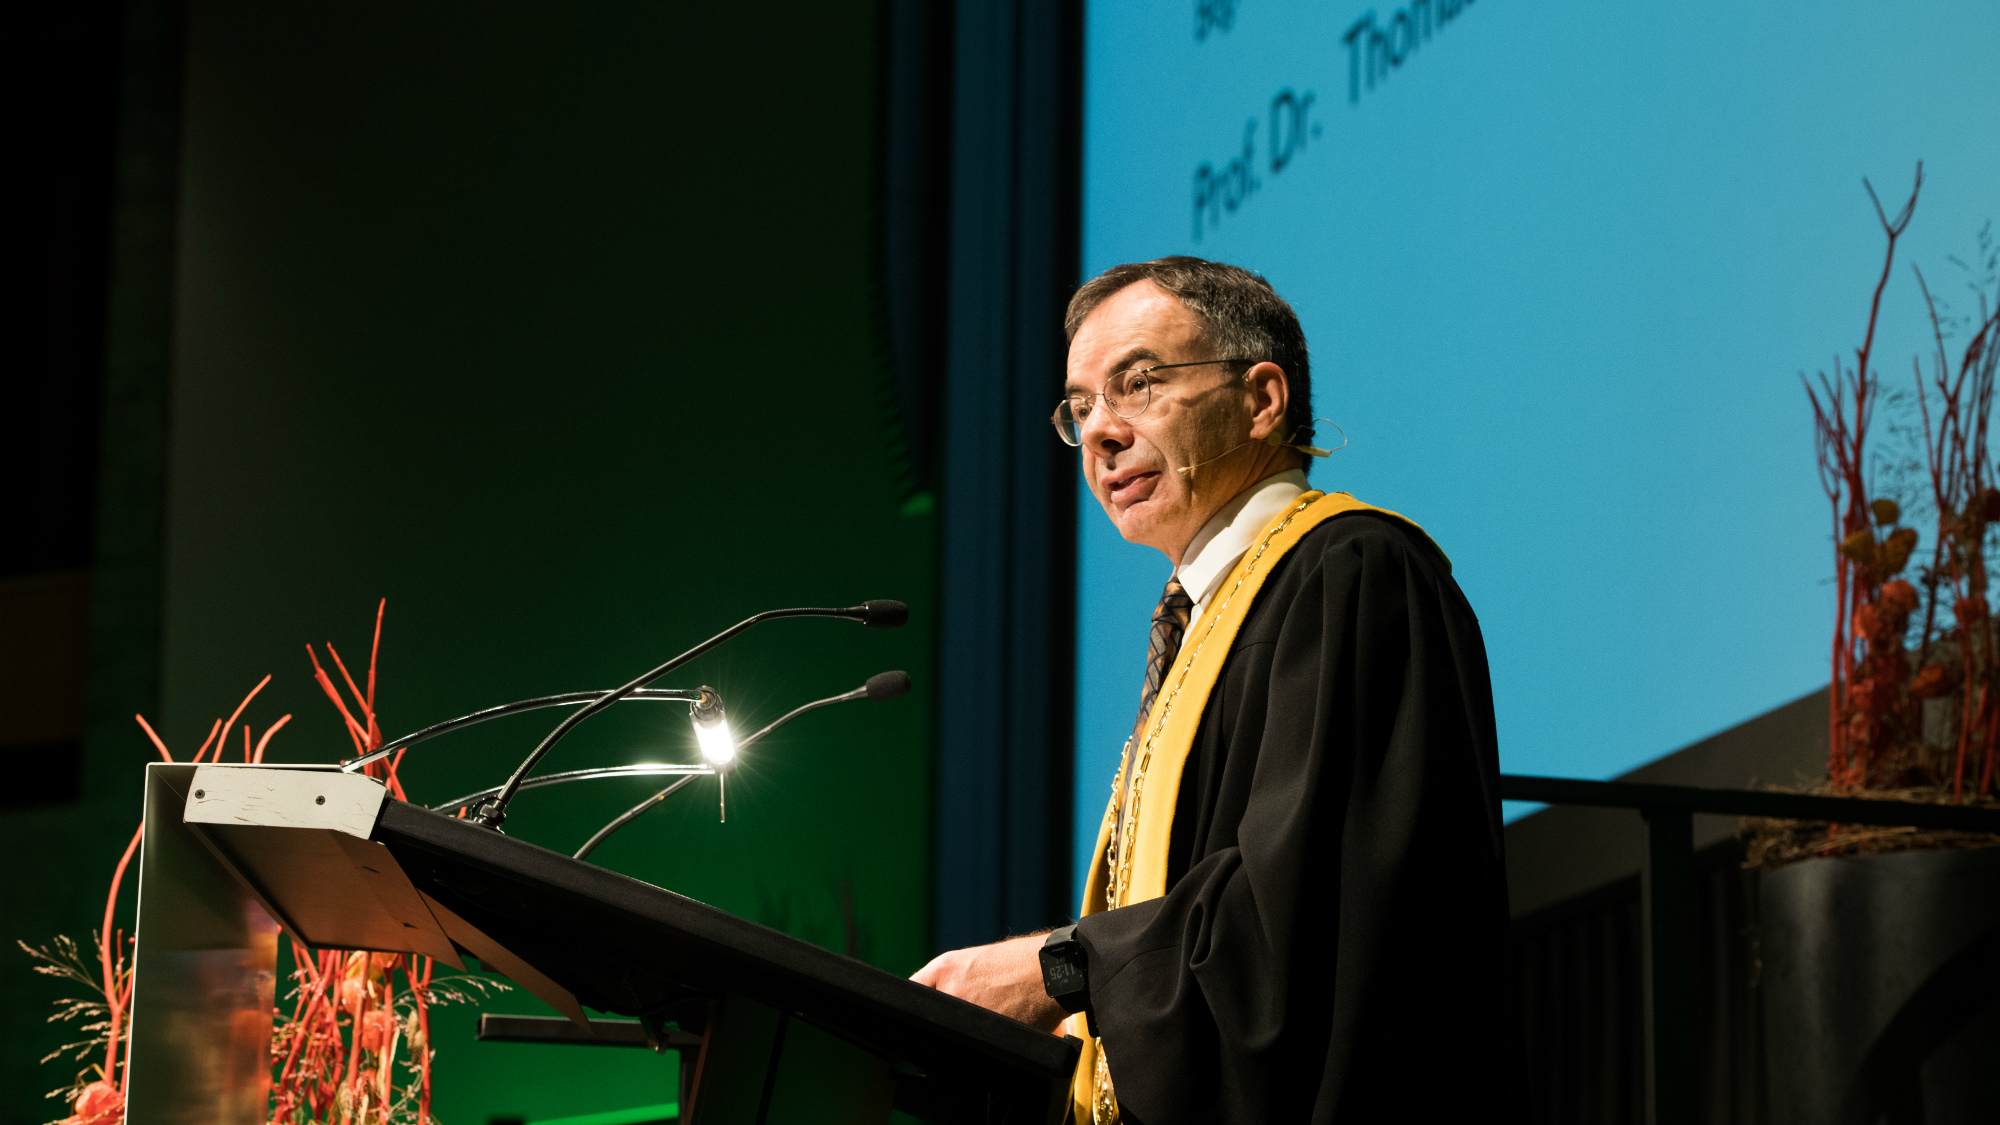 HSG President Thomas Bieger at the Master Graduation Day autumn 2017